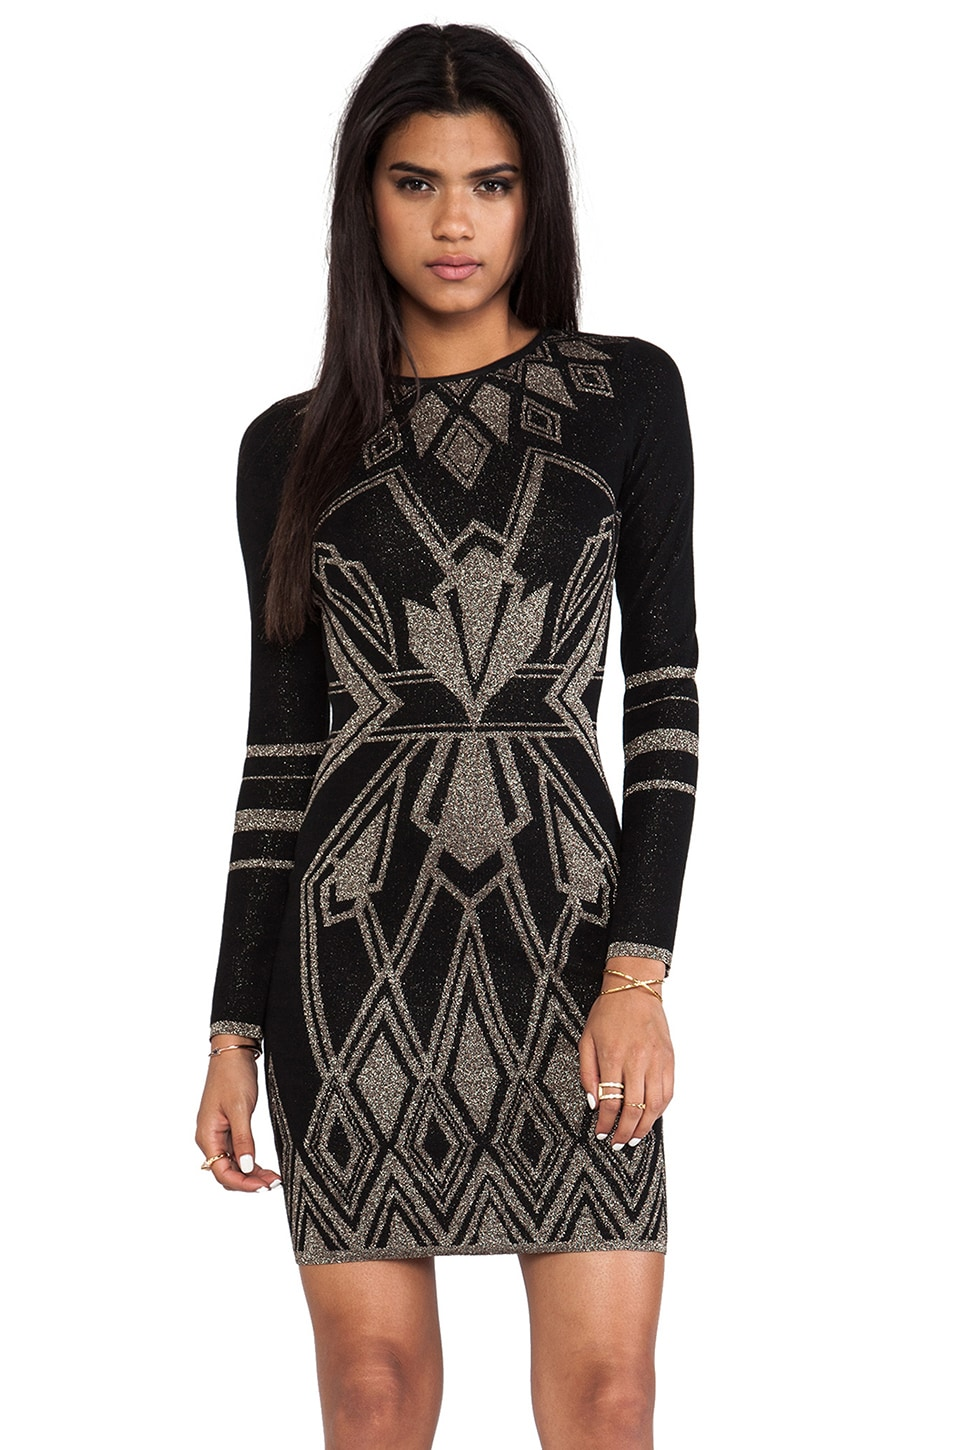 Alice by Temperley Ritz Dress in Black Mix